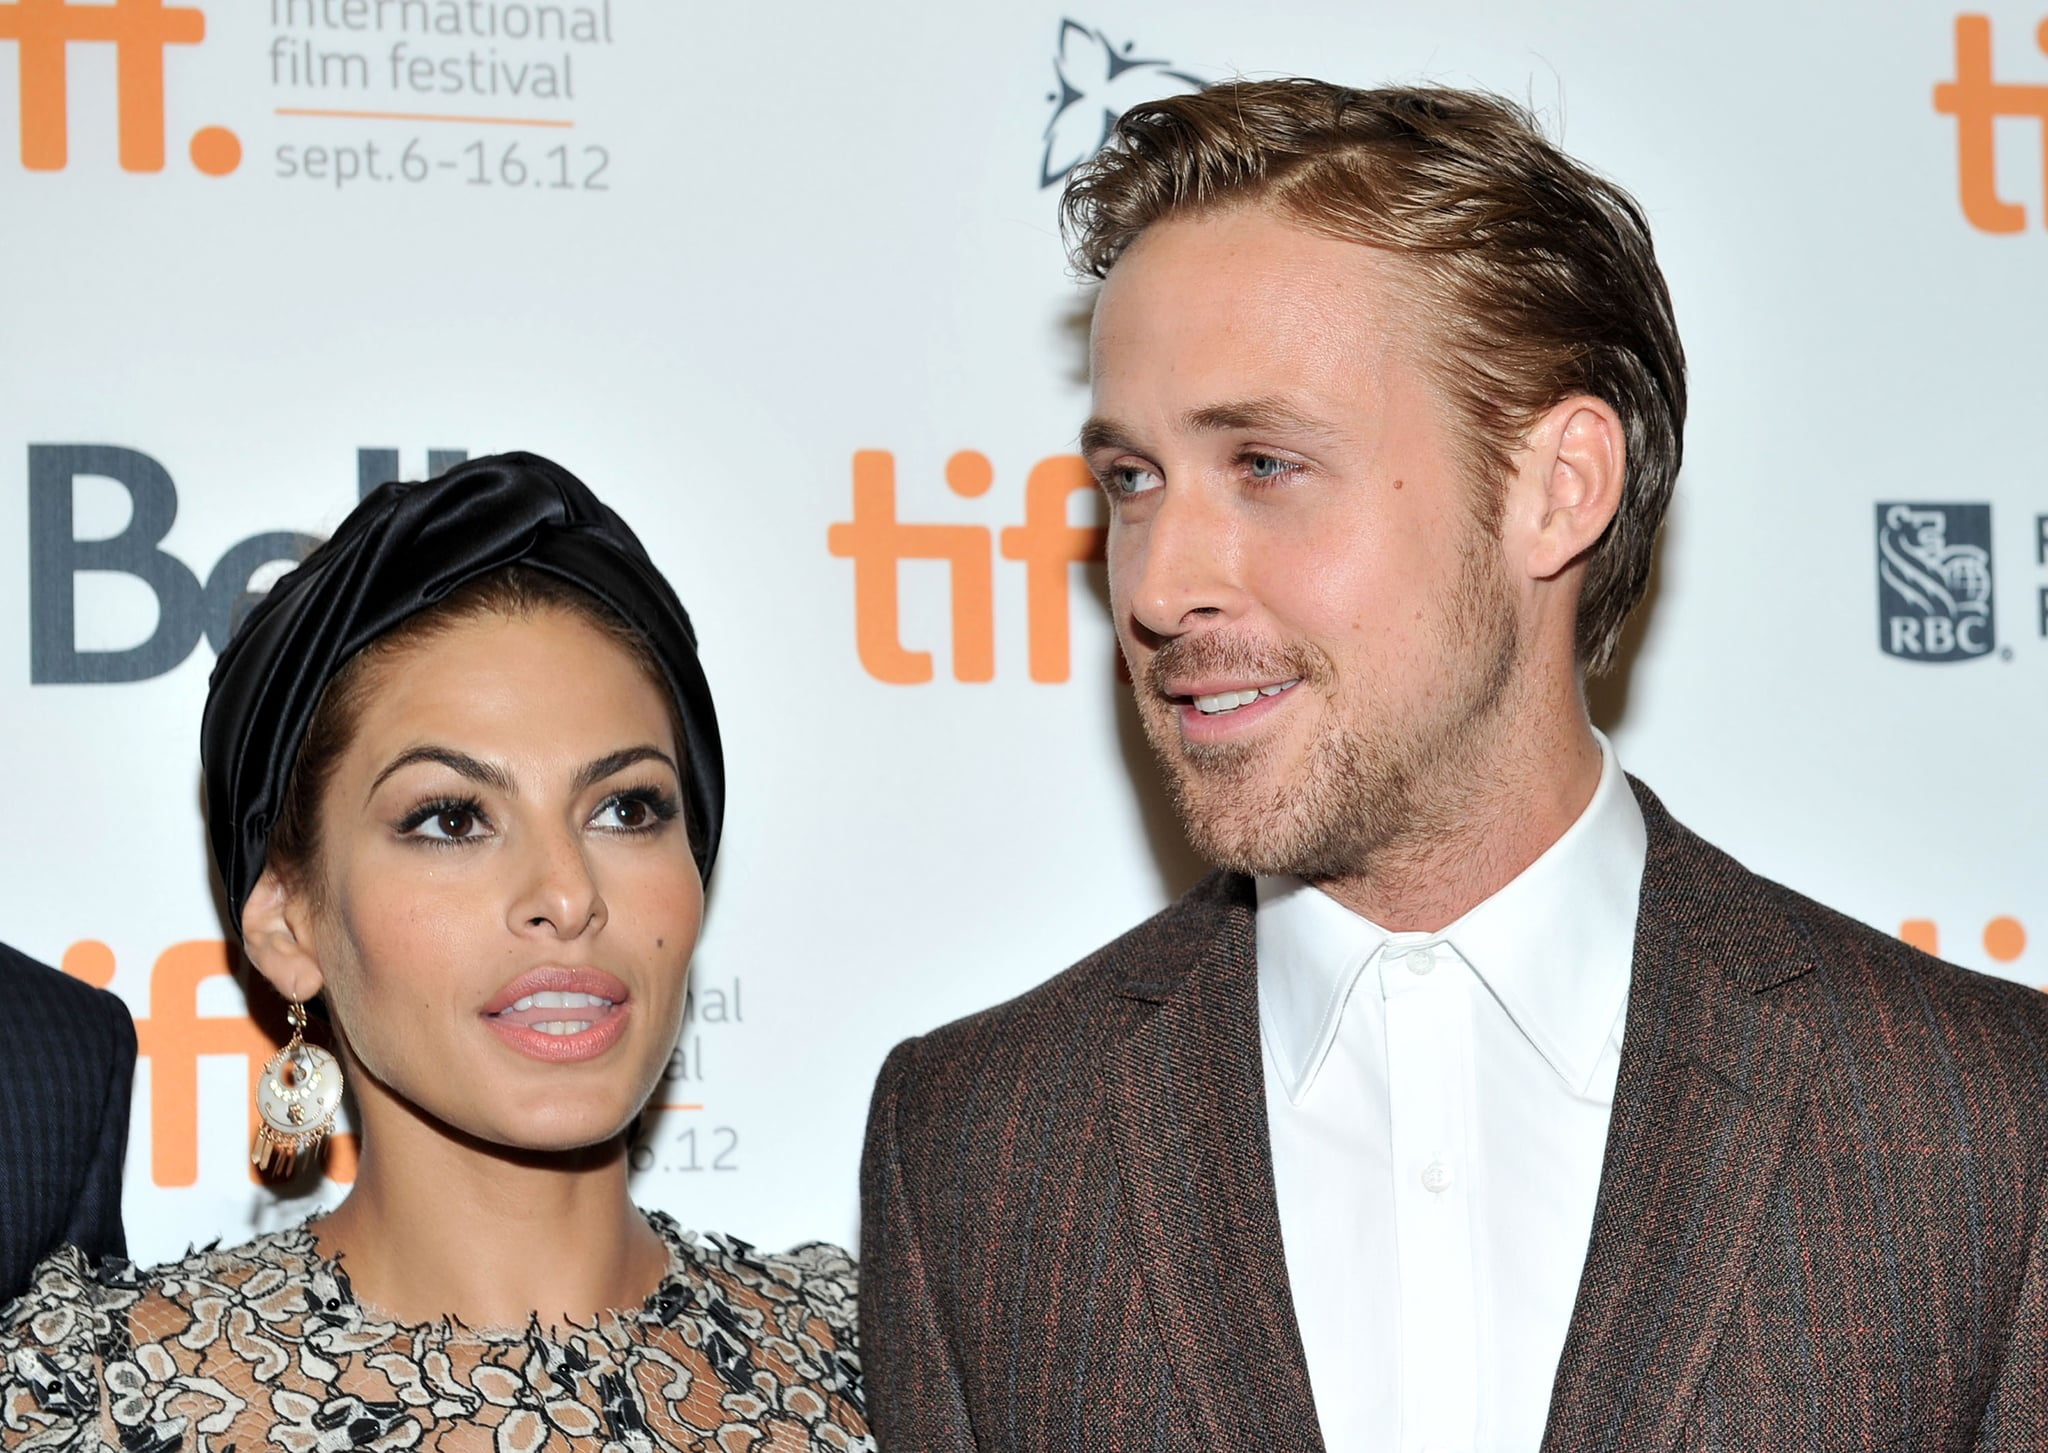 TORONTO, ON - SEPTEMBER 07: Actors (L-R) Eva Mendes and Ryan Gosling attend